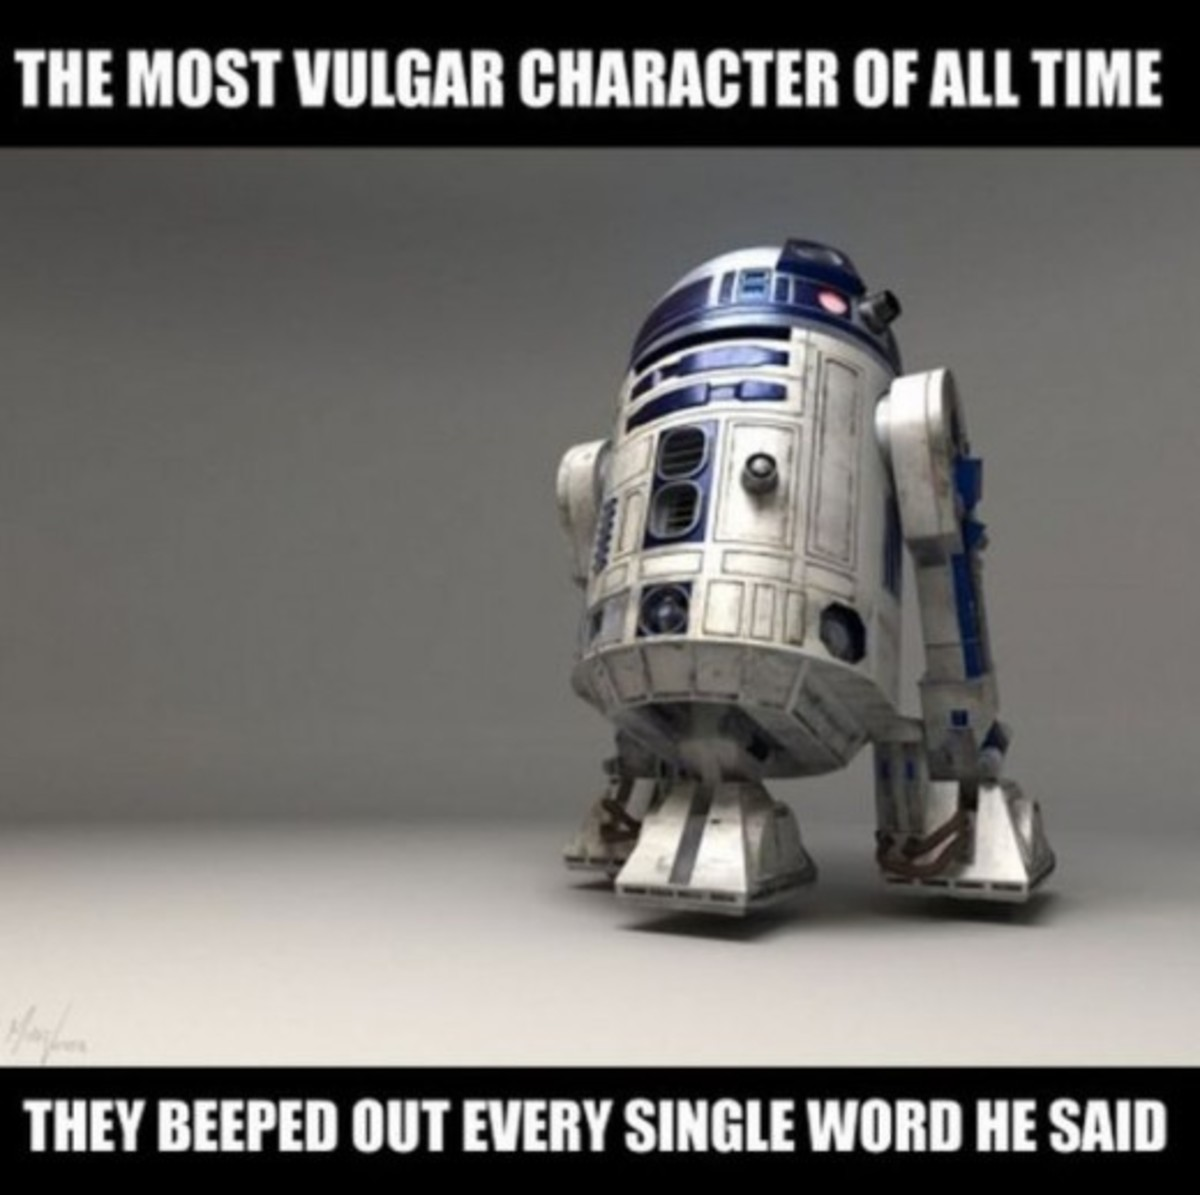 R2-D2 (I love this meme)